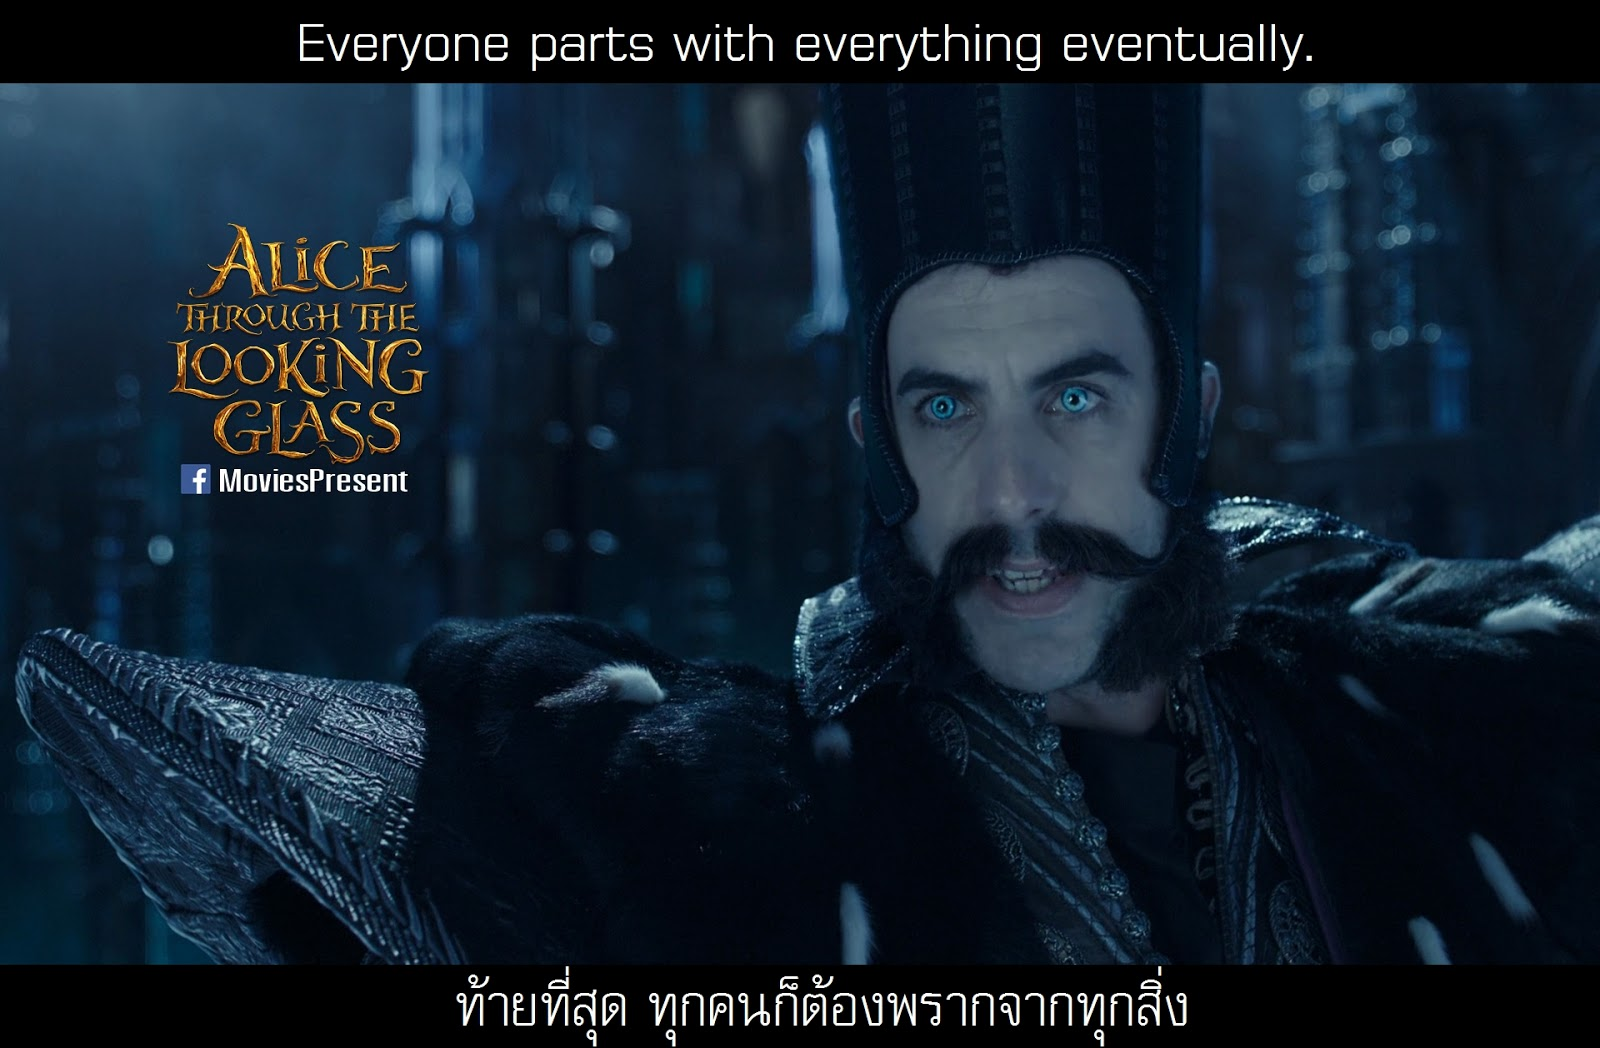 Through The Looking Glass Quotes Moviesquotesmoviespresent Alice Through The Looking Glass อลิ